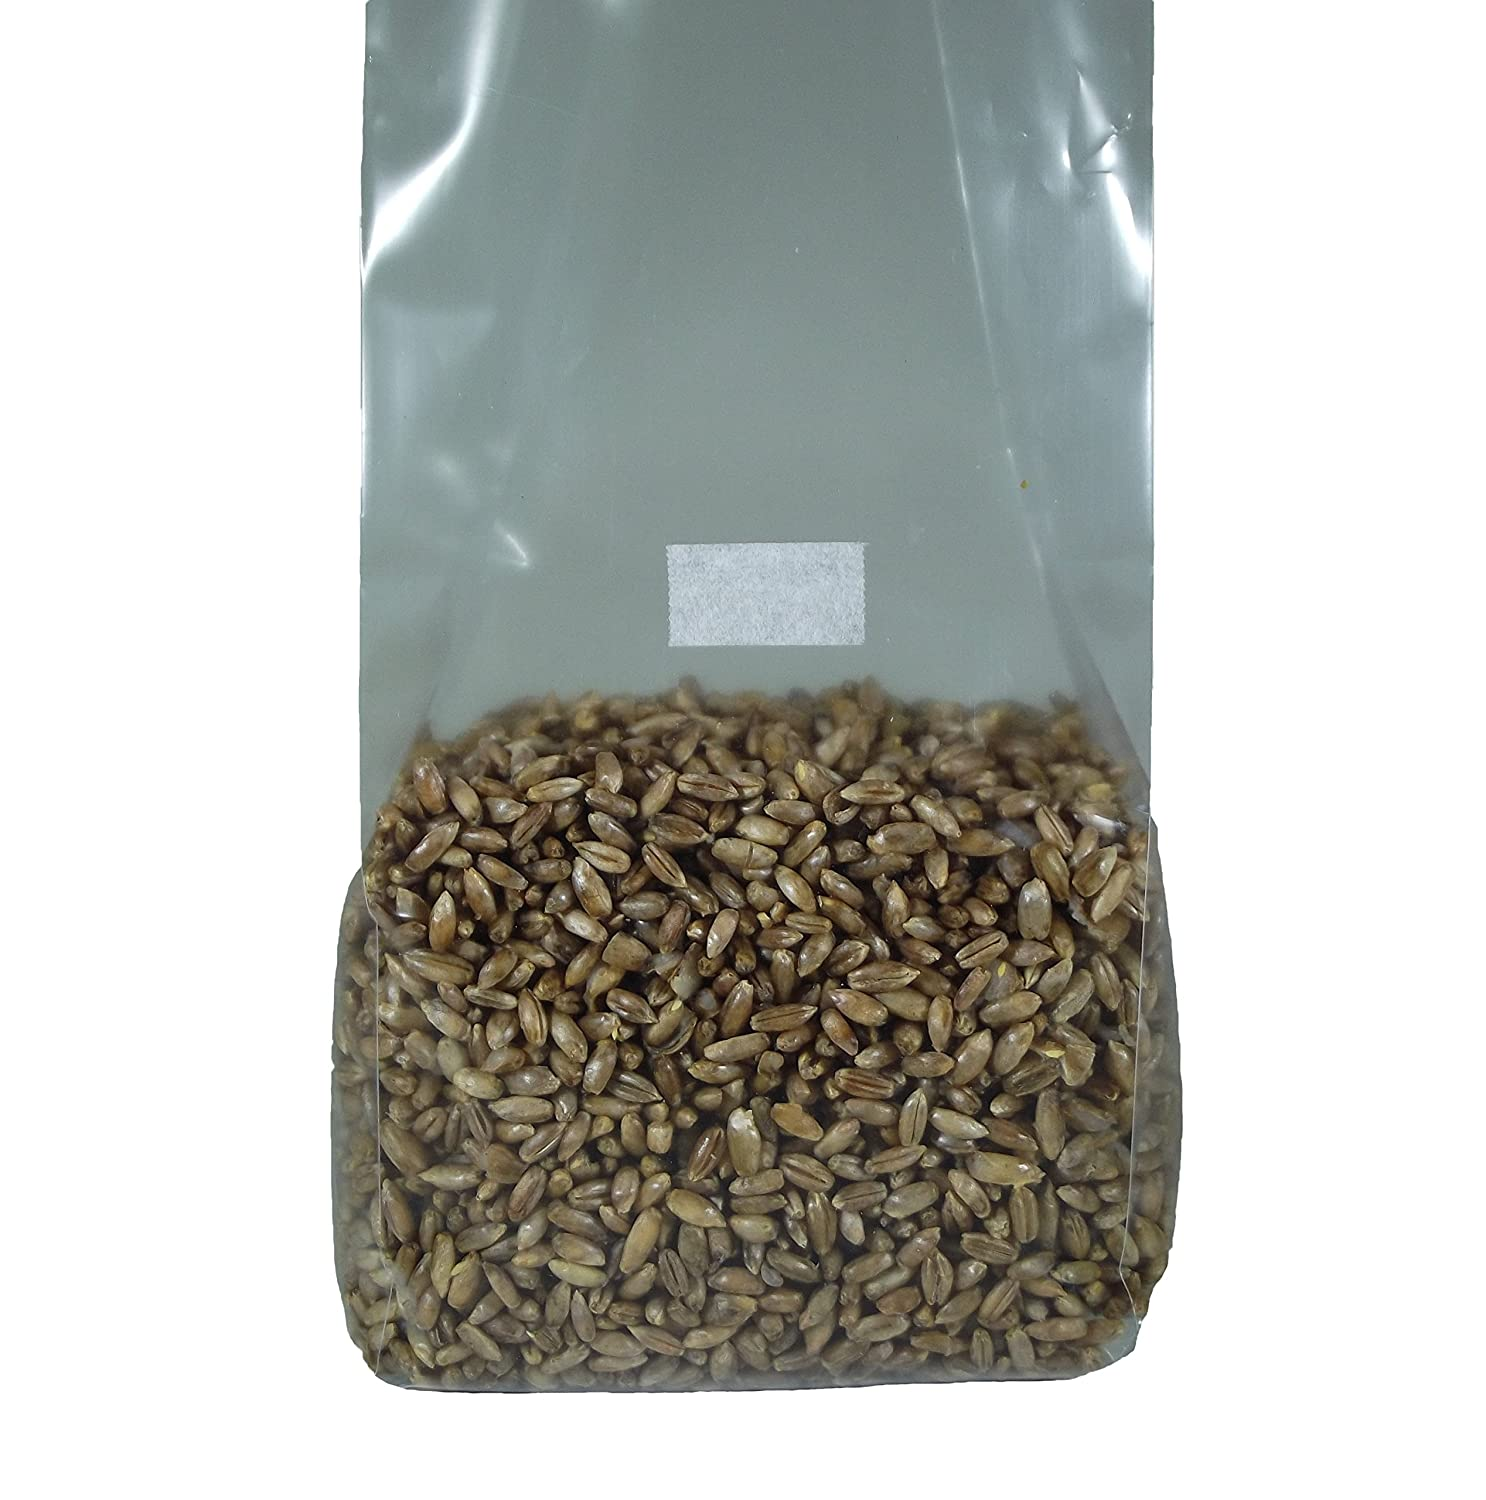 Sterilized Rye Berry Mushroom Spawn Substrate by Out Grow